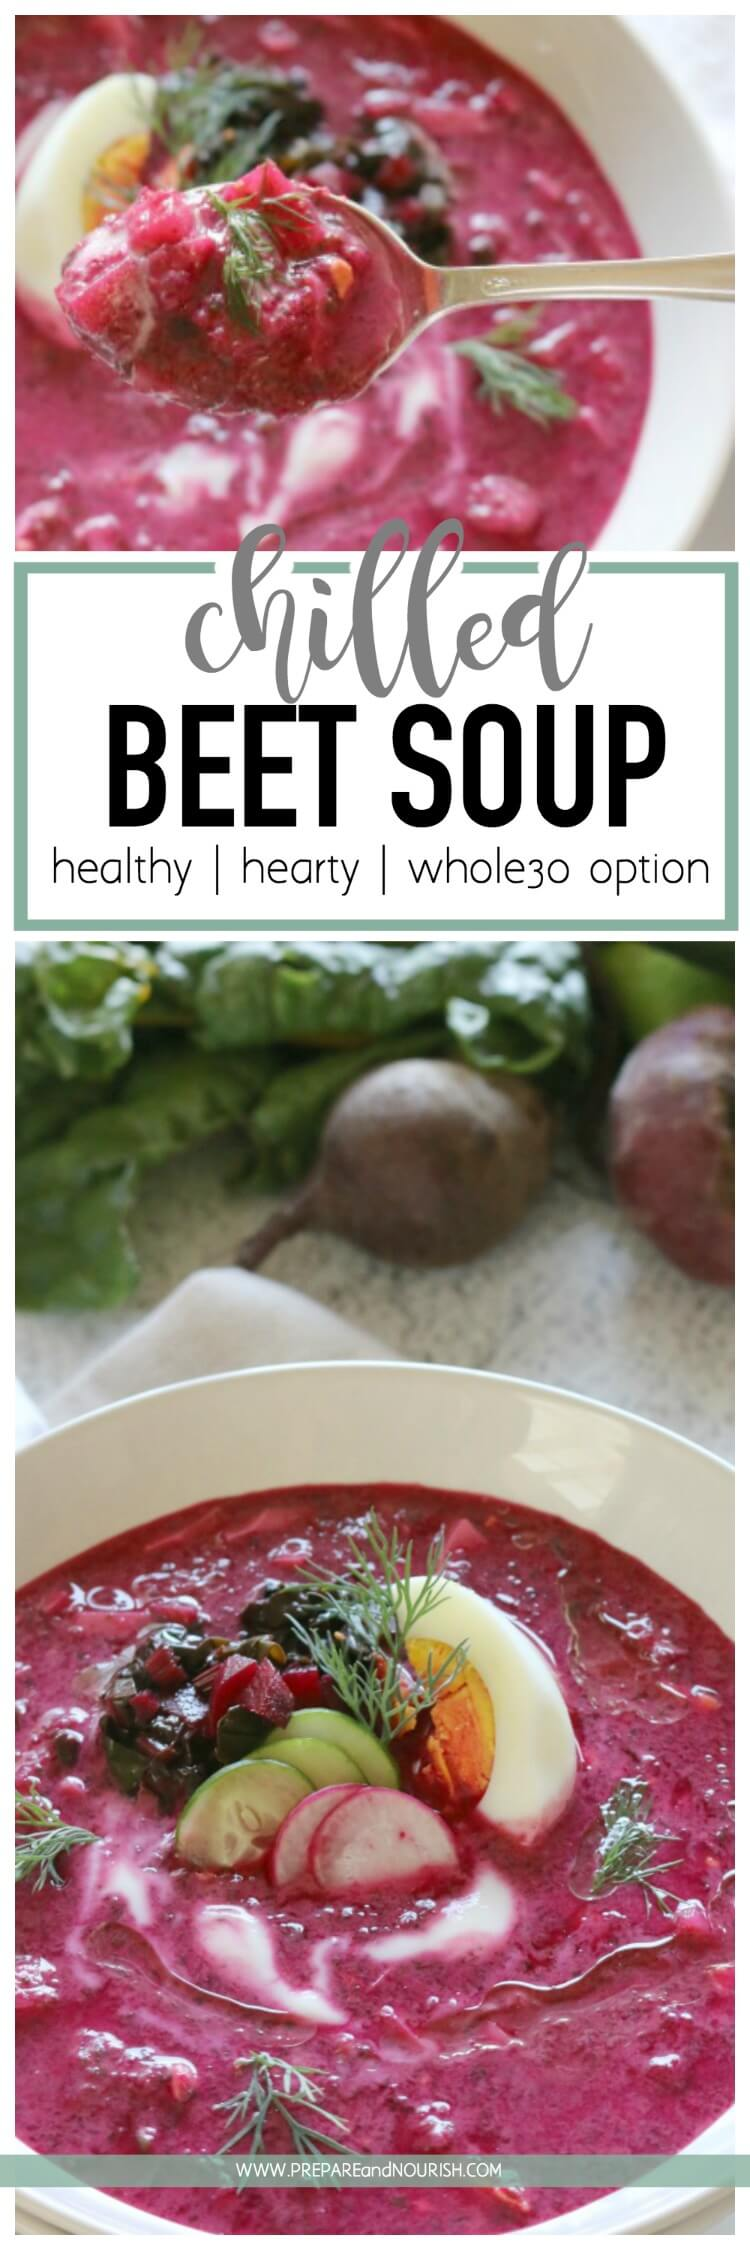 Chilled Beet Soup - This Chilled Beet Soup is refreshing with earthy undertones and delicious flavors. Make it Whole30 by keeping it dairy free with coconut cream.